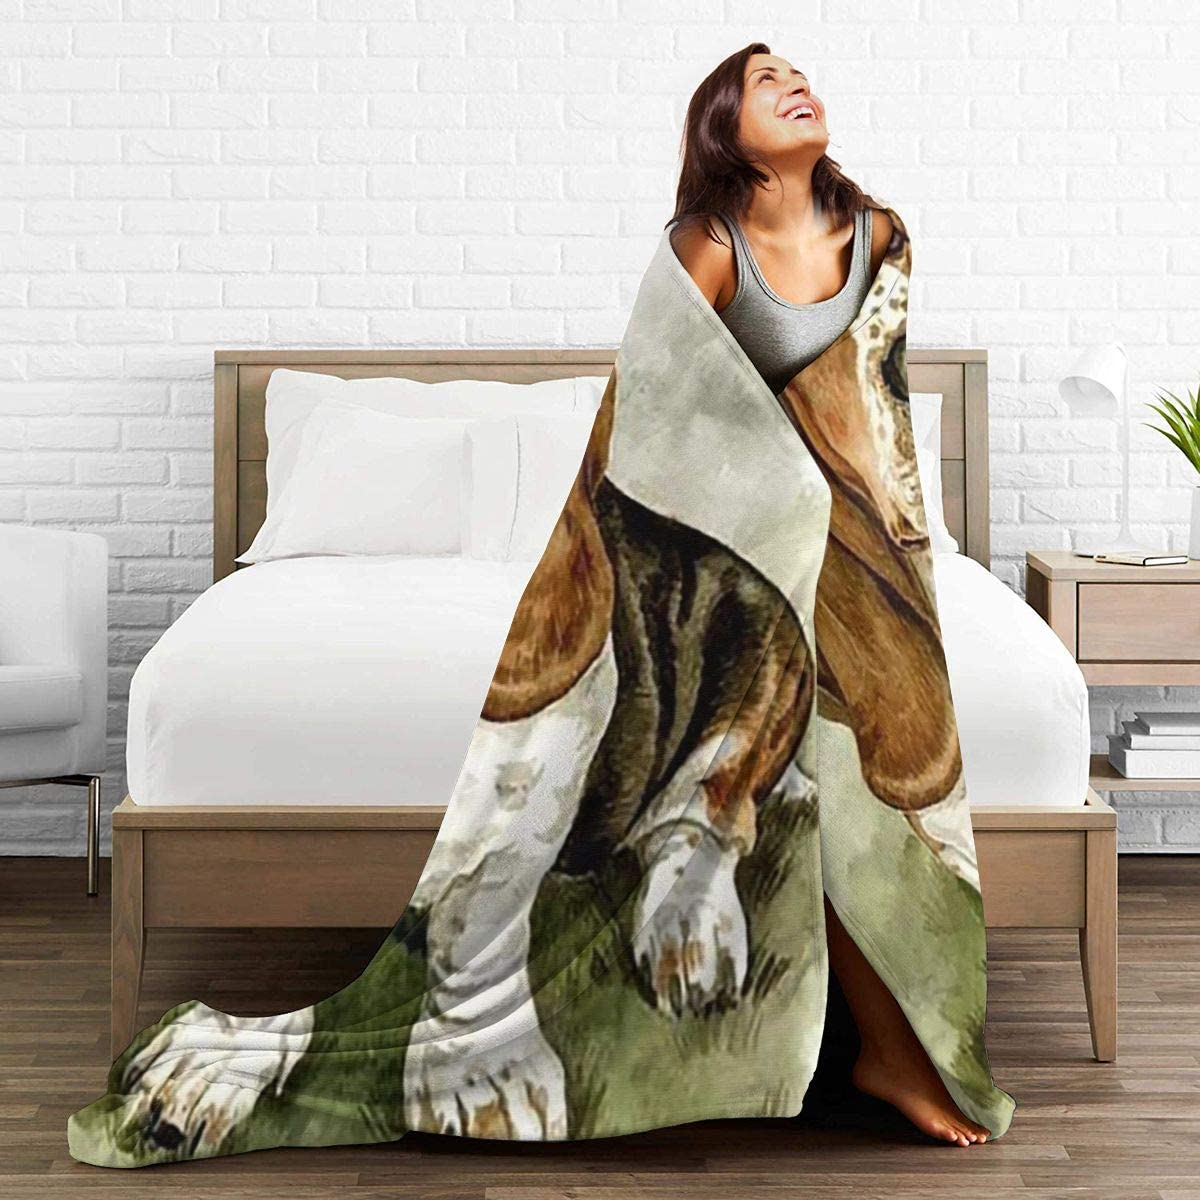 Soft Cozy Flannel Blanket Travel Twin Size Blankets for Boys Girls Couch Sofa Bed Chair Basset Hound Dog Throw Blanket Thin for Summer All Seasons 80x60 in